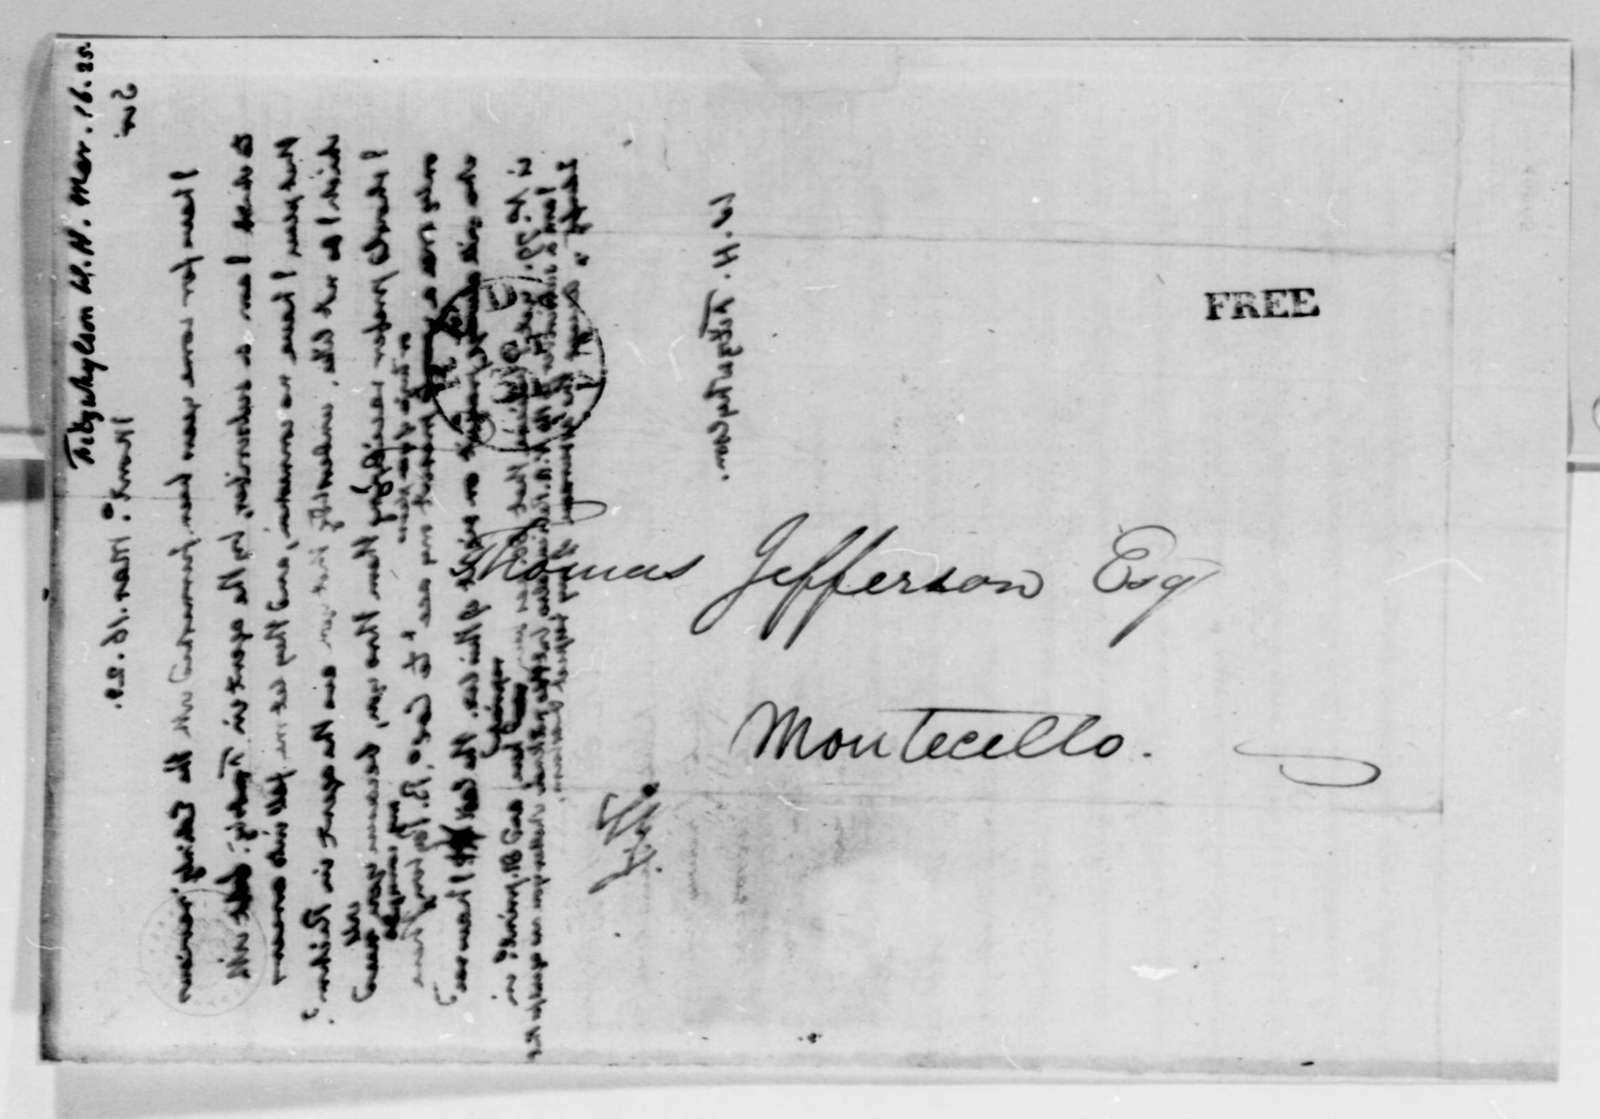 Thomas Jefferson to William A. Fitzwhylson, March 16, 1825